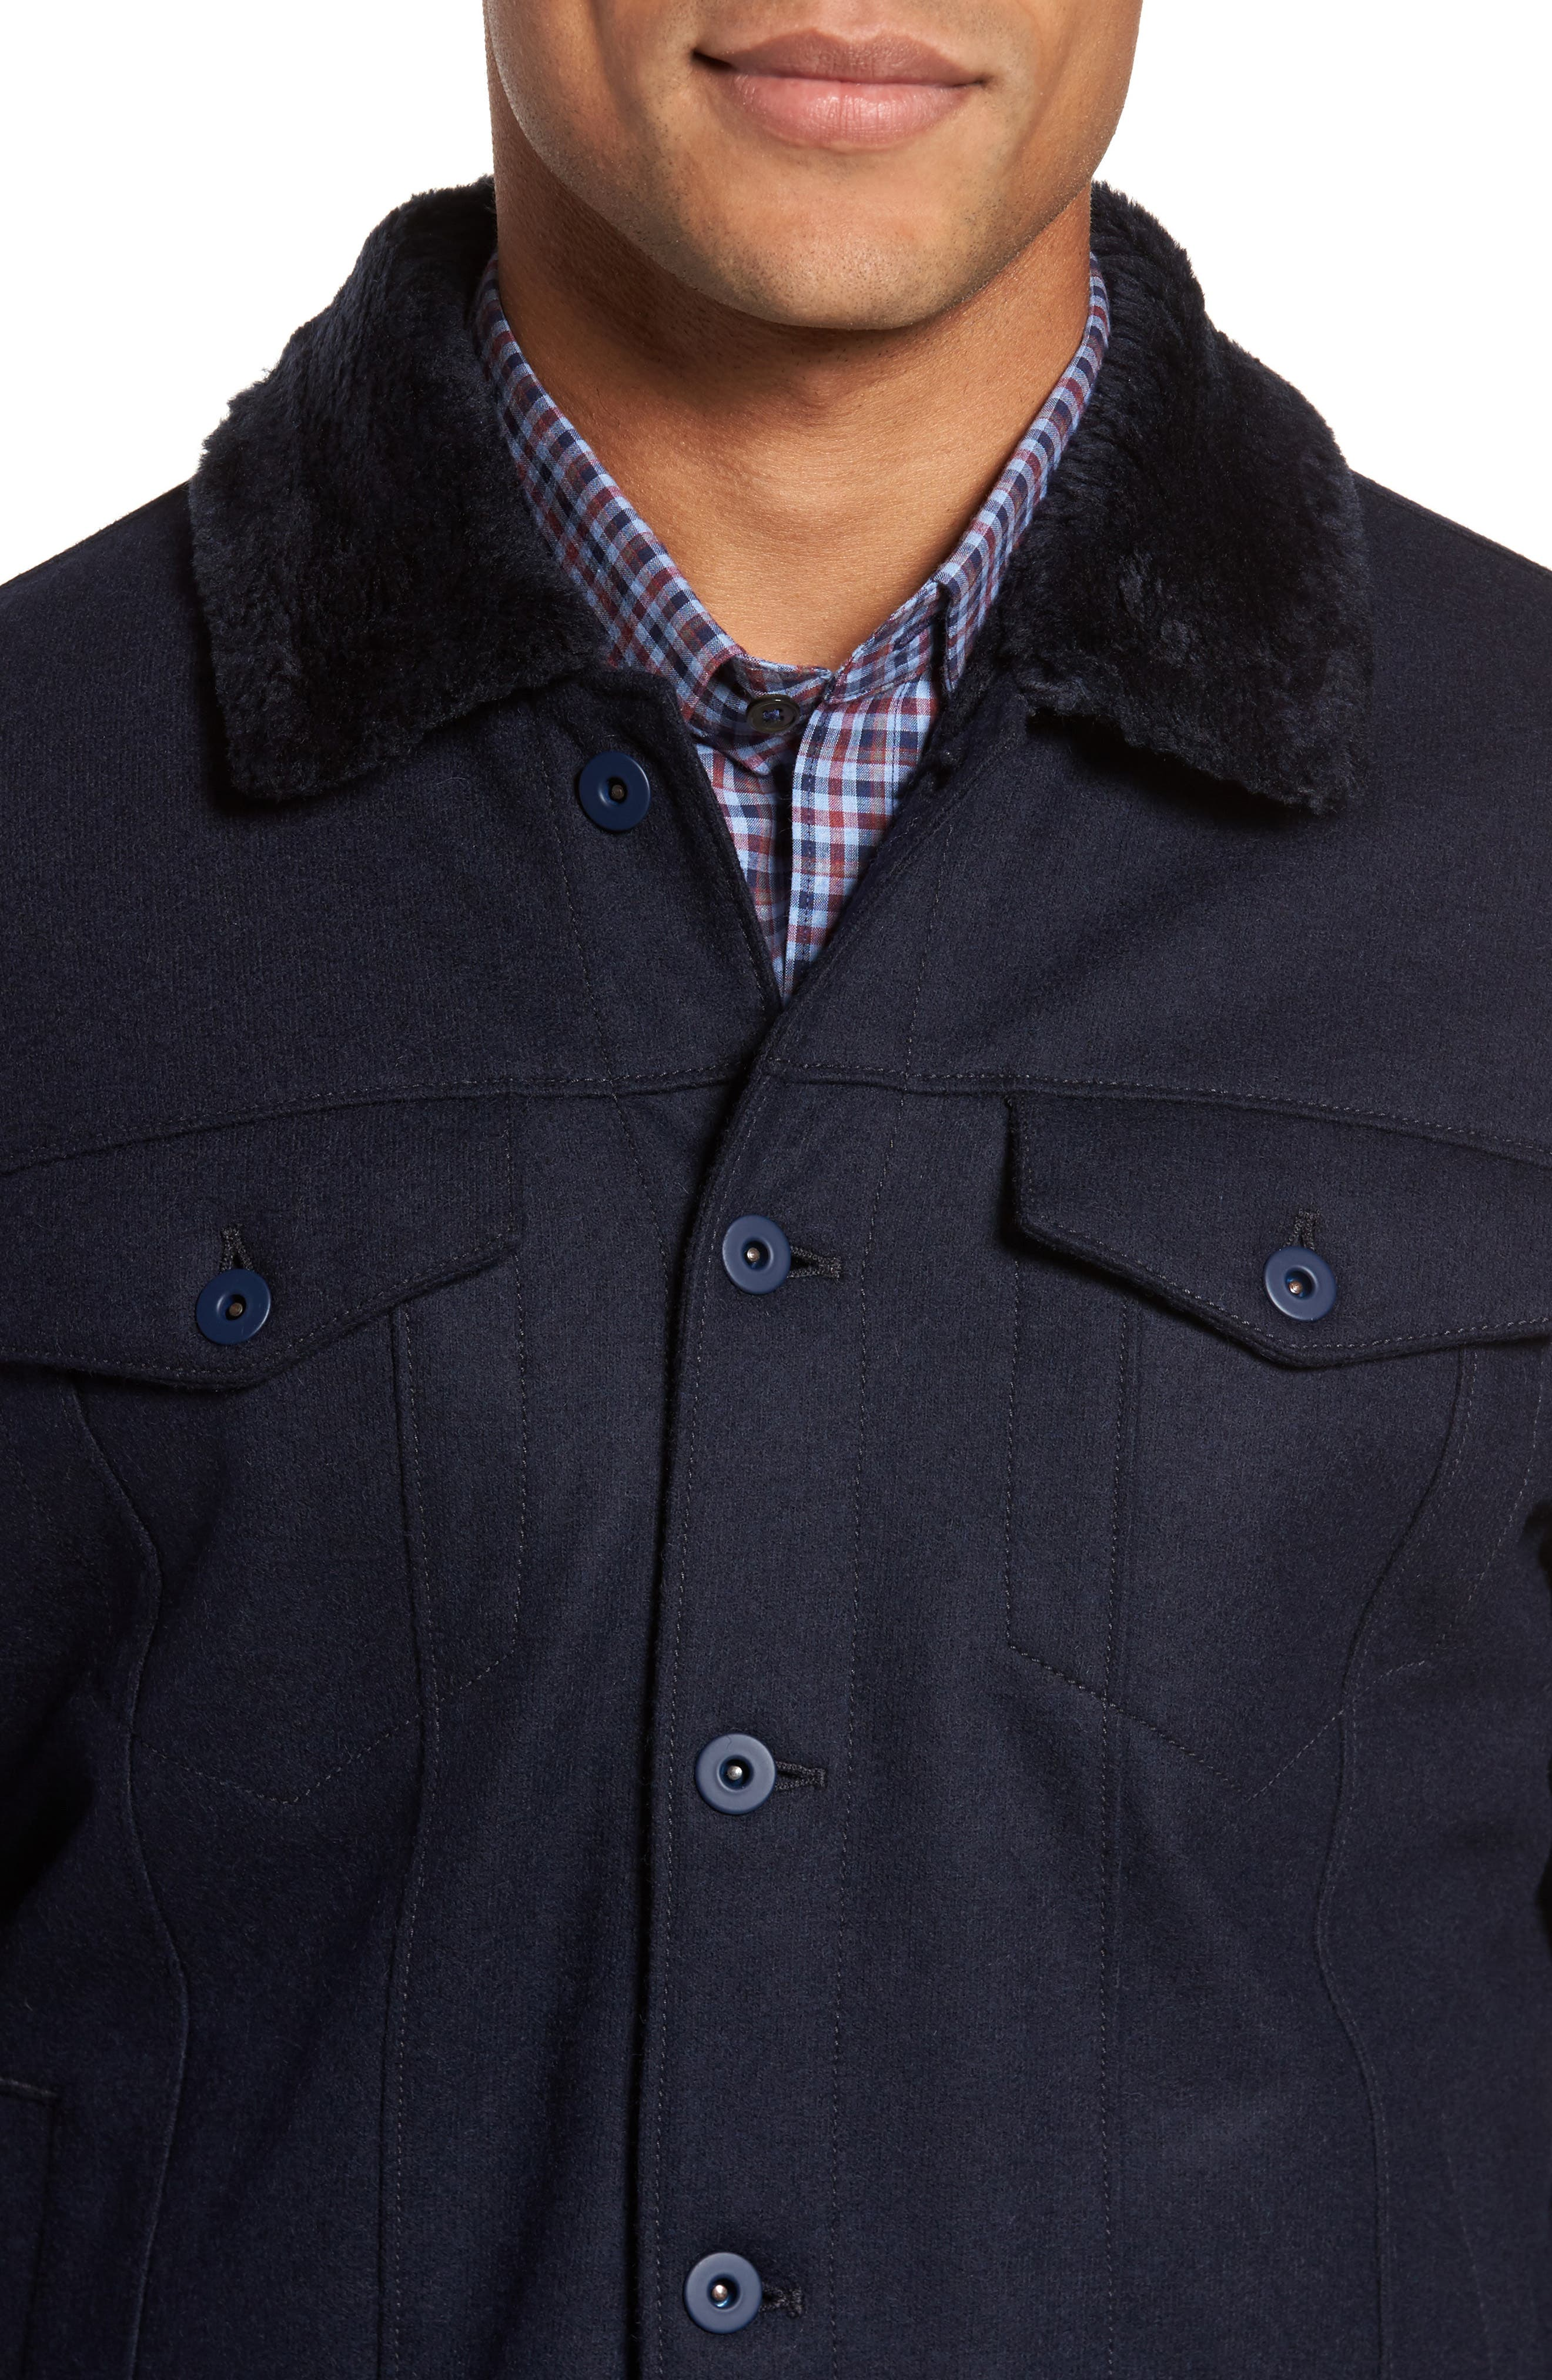 ZACHARY PRELL, Faux Fur Trim Jacket, Alternate thumbnail 4, color, NAVY